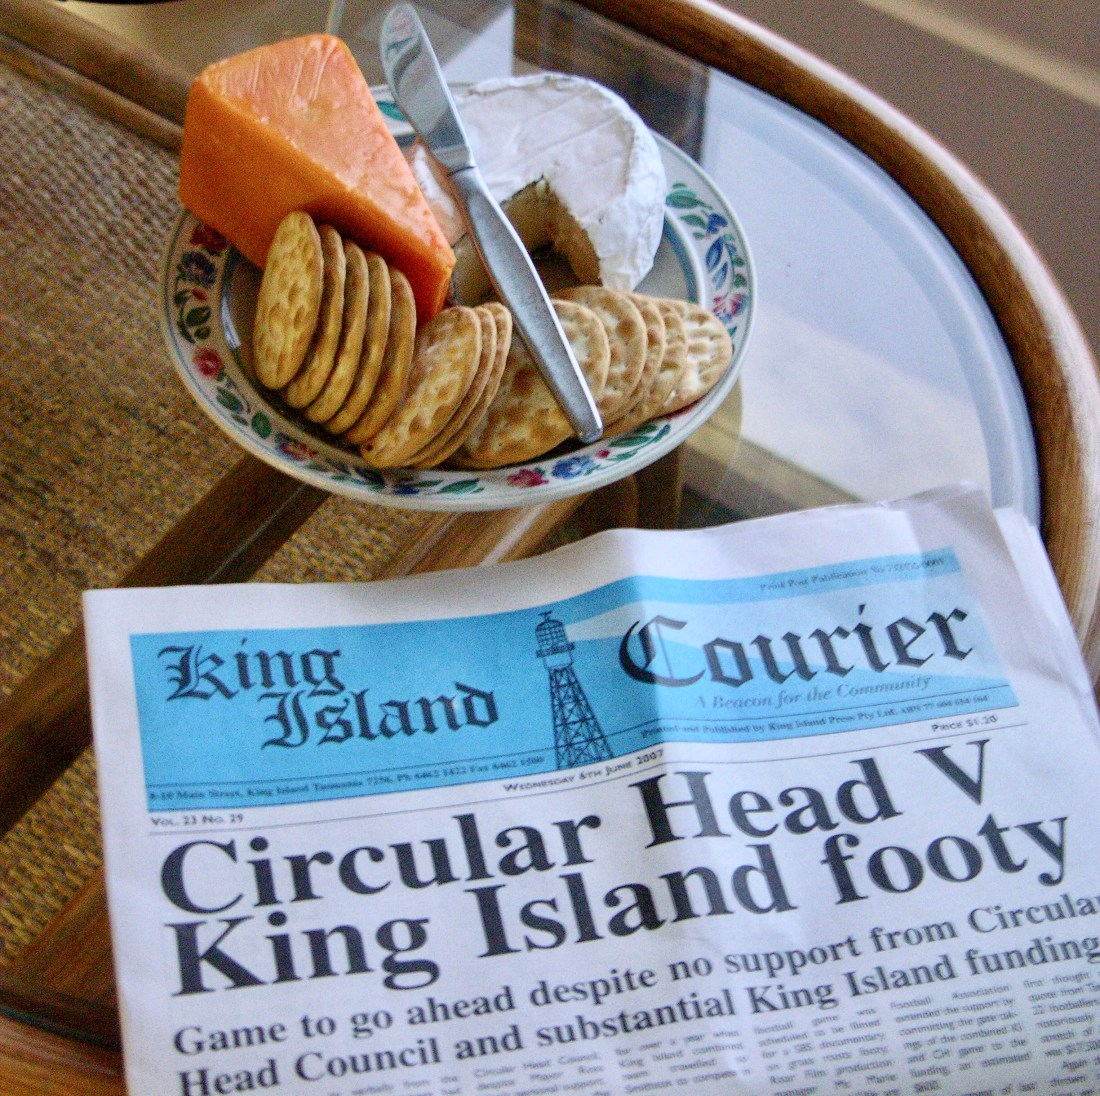 King Island Cheese, King Island Tasmania, Australia, cheese, King Island Australia, image by Jade Jackson